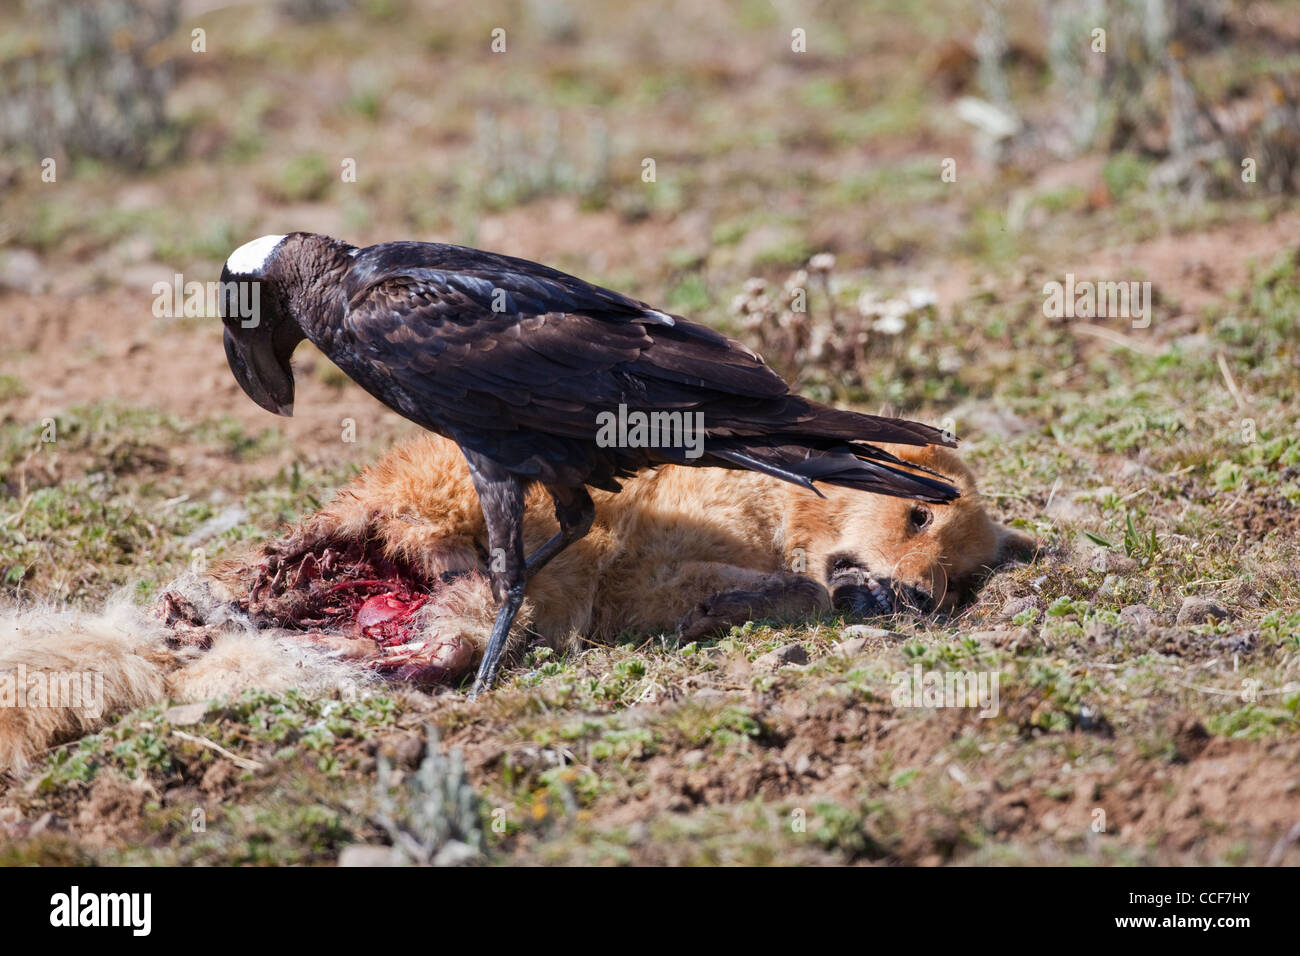 Thick-billed Raven (Corvus crassirostris). Using massive bill to break into the carcass of a feral dog. Central - Stock Image